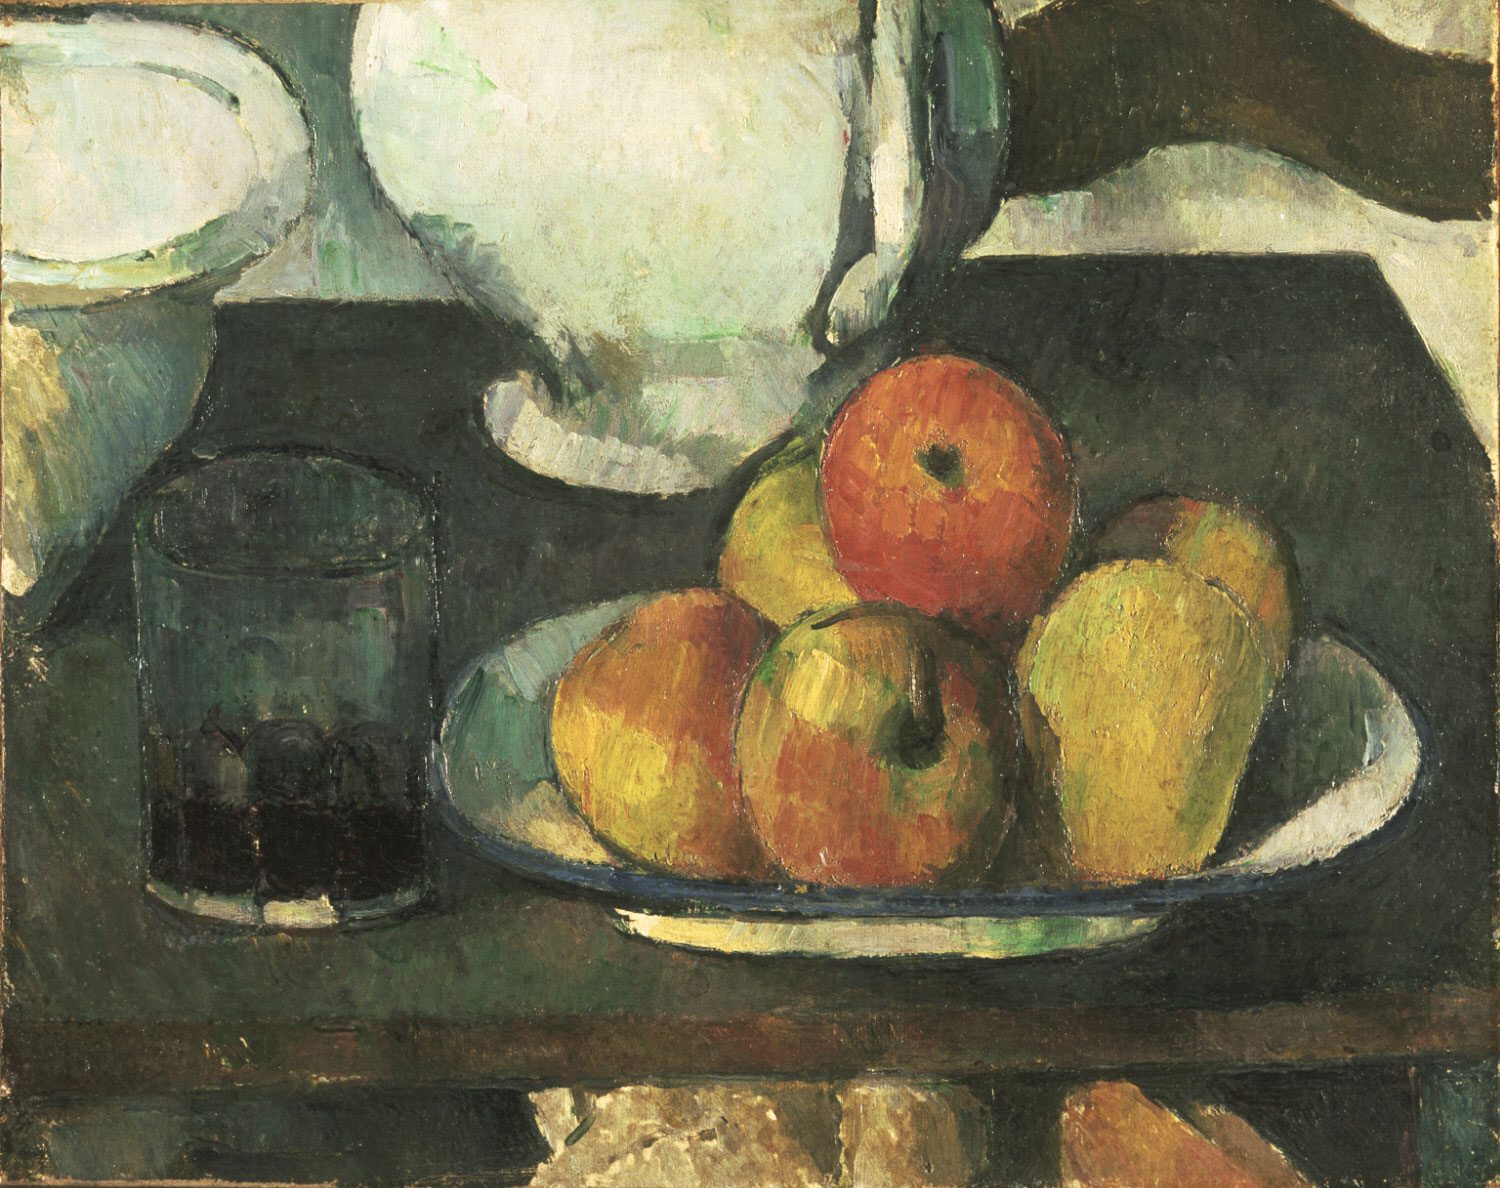 Still Life with apples 1877-1879